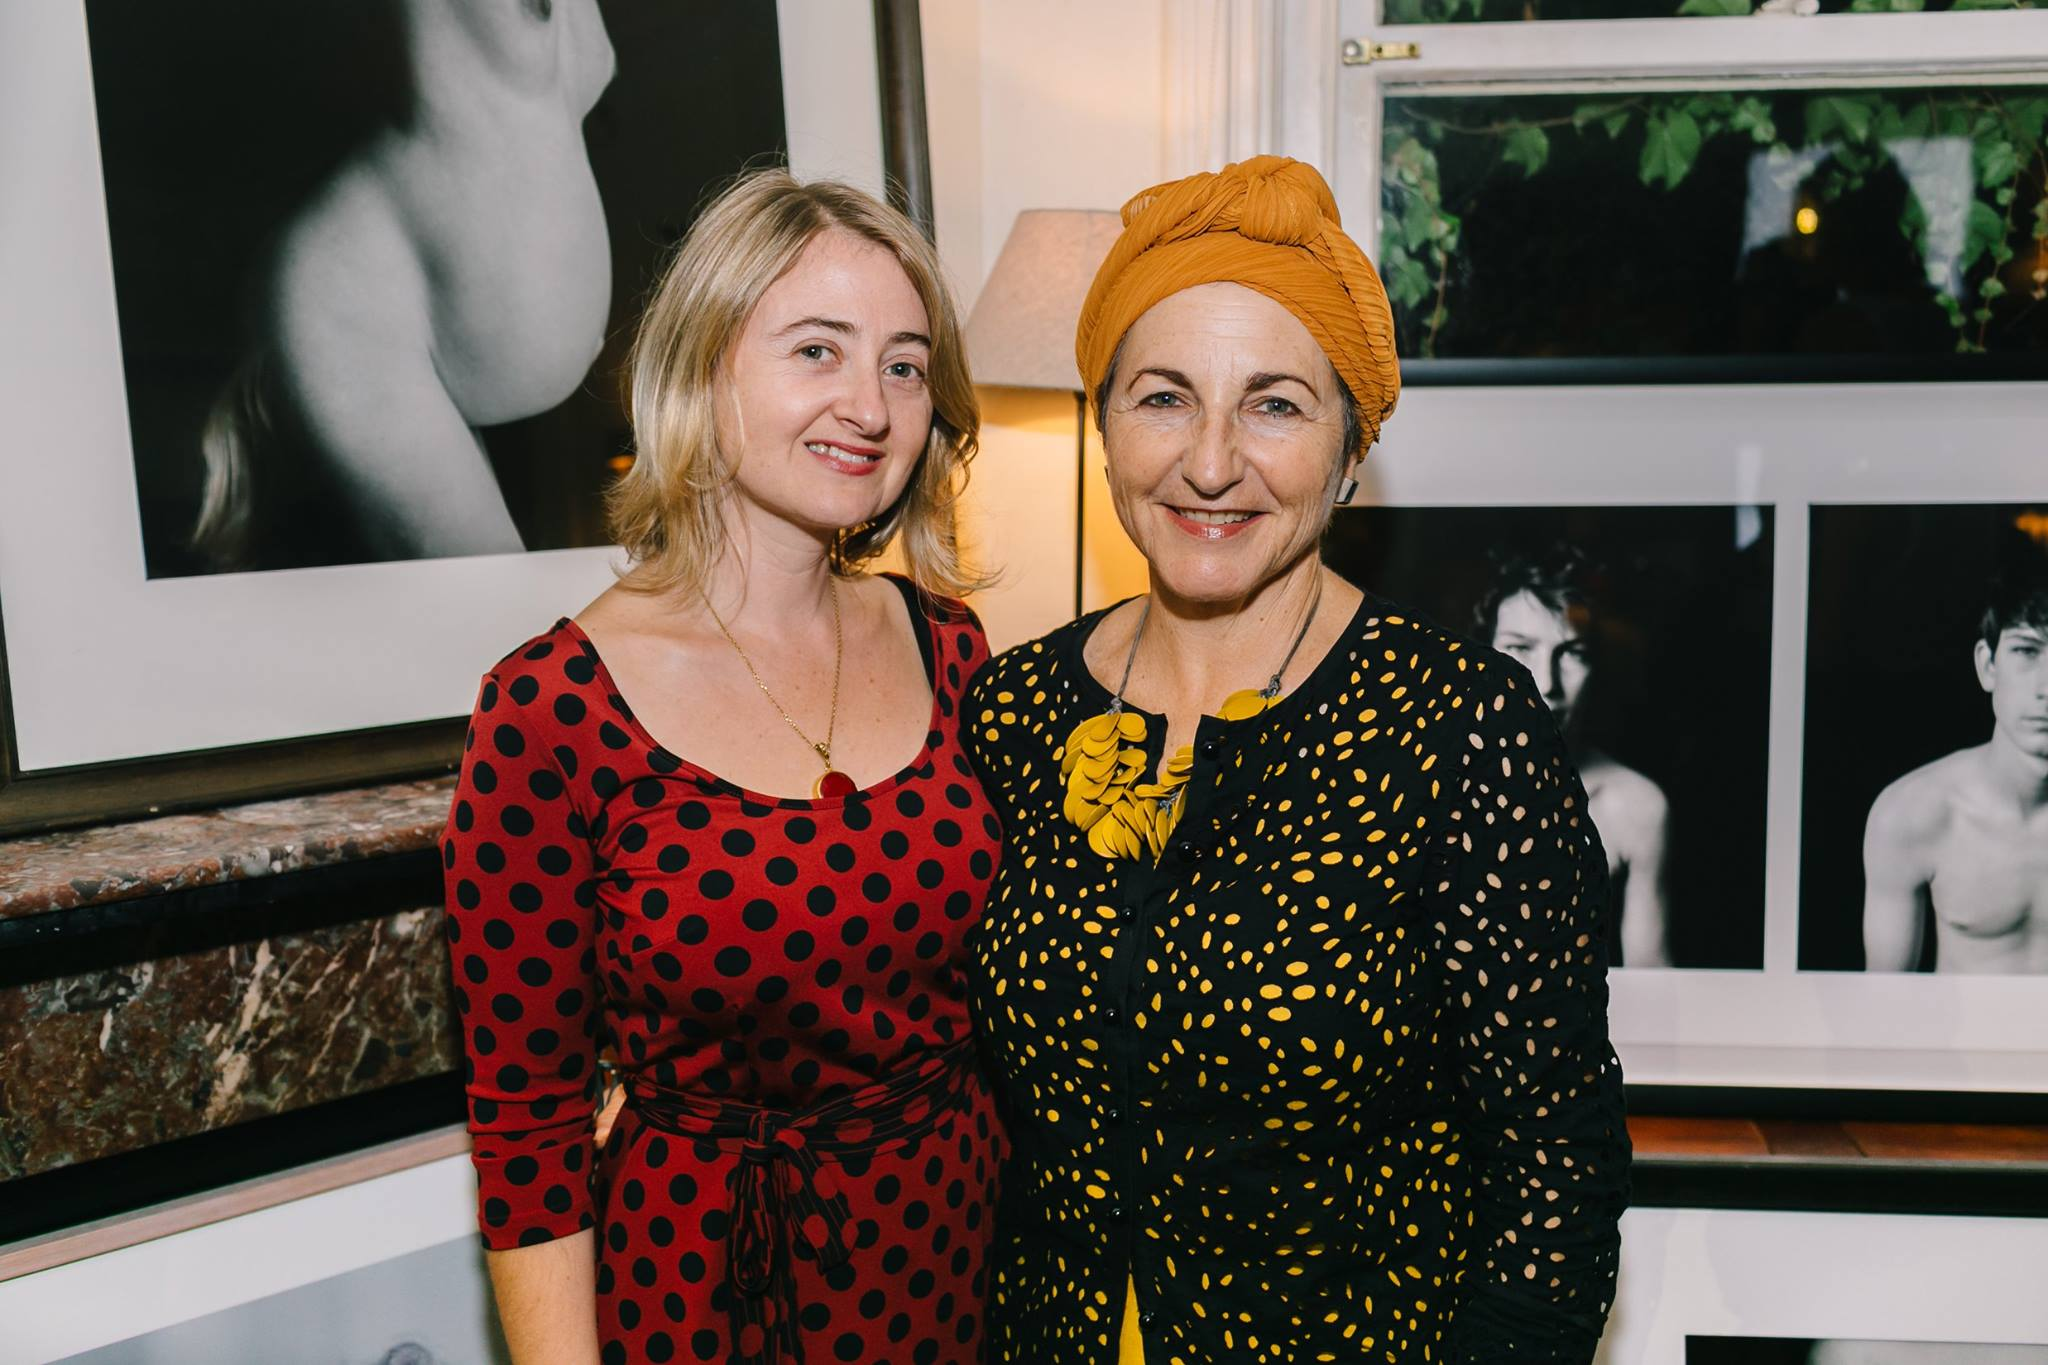 With the formidable Ella Dreyfus, photographic artist, and our April Creative Mama Evening presenter.